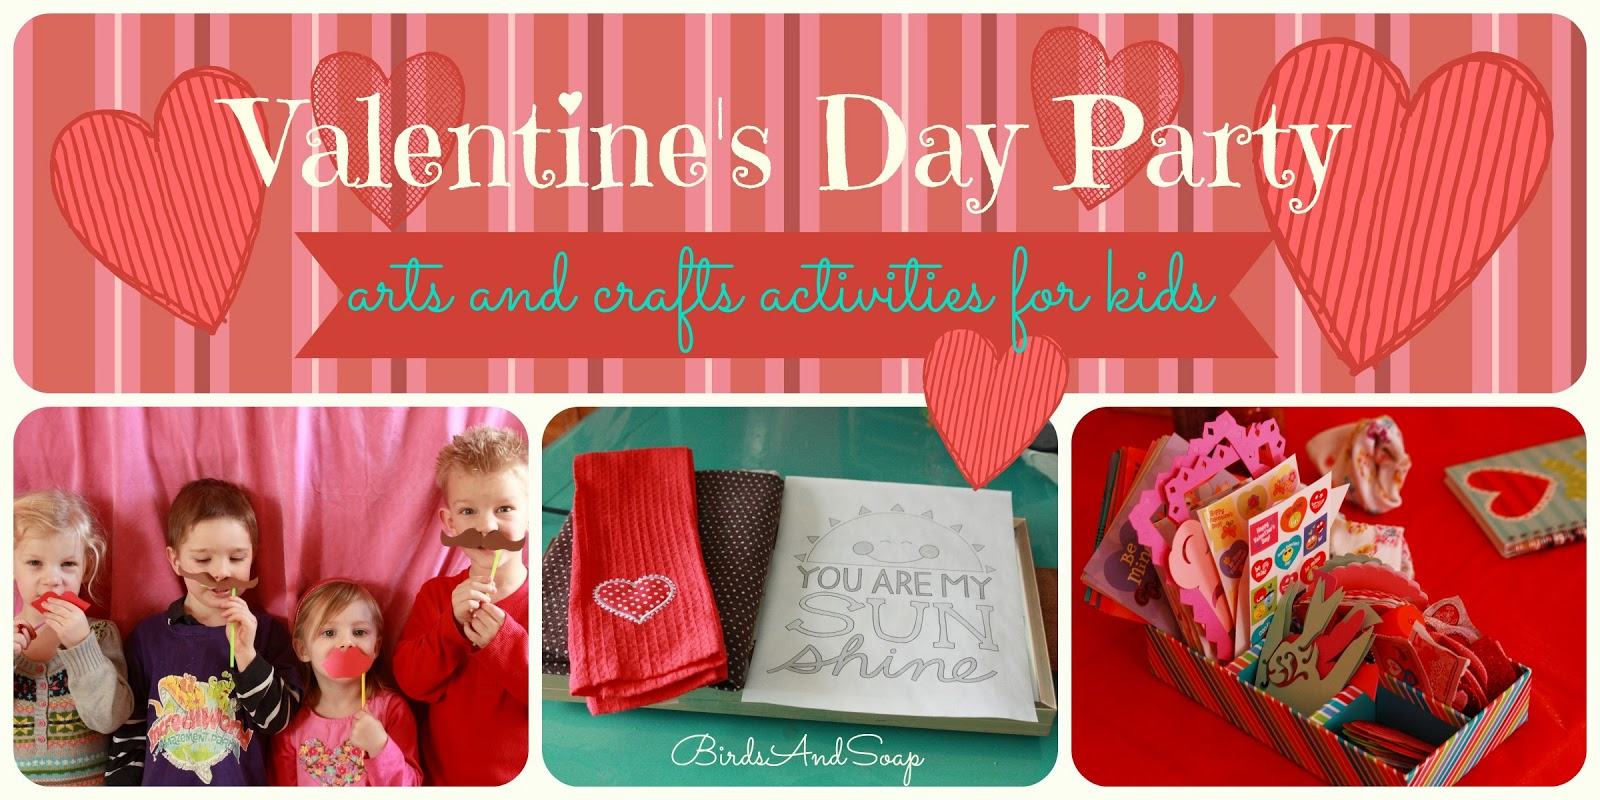 Valentine party ideas for church - Valentines Day Party Activities